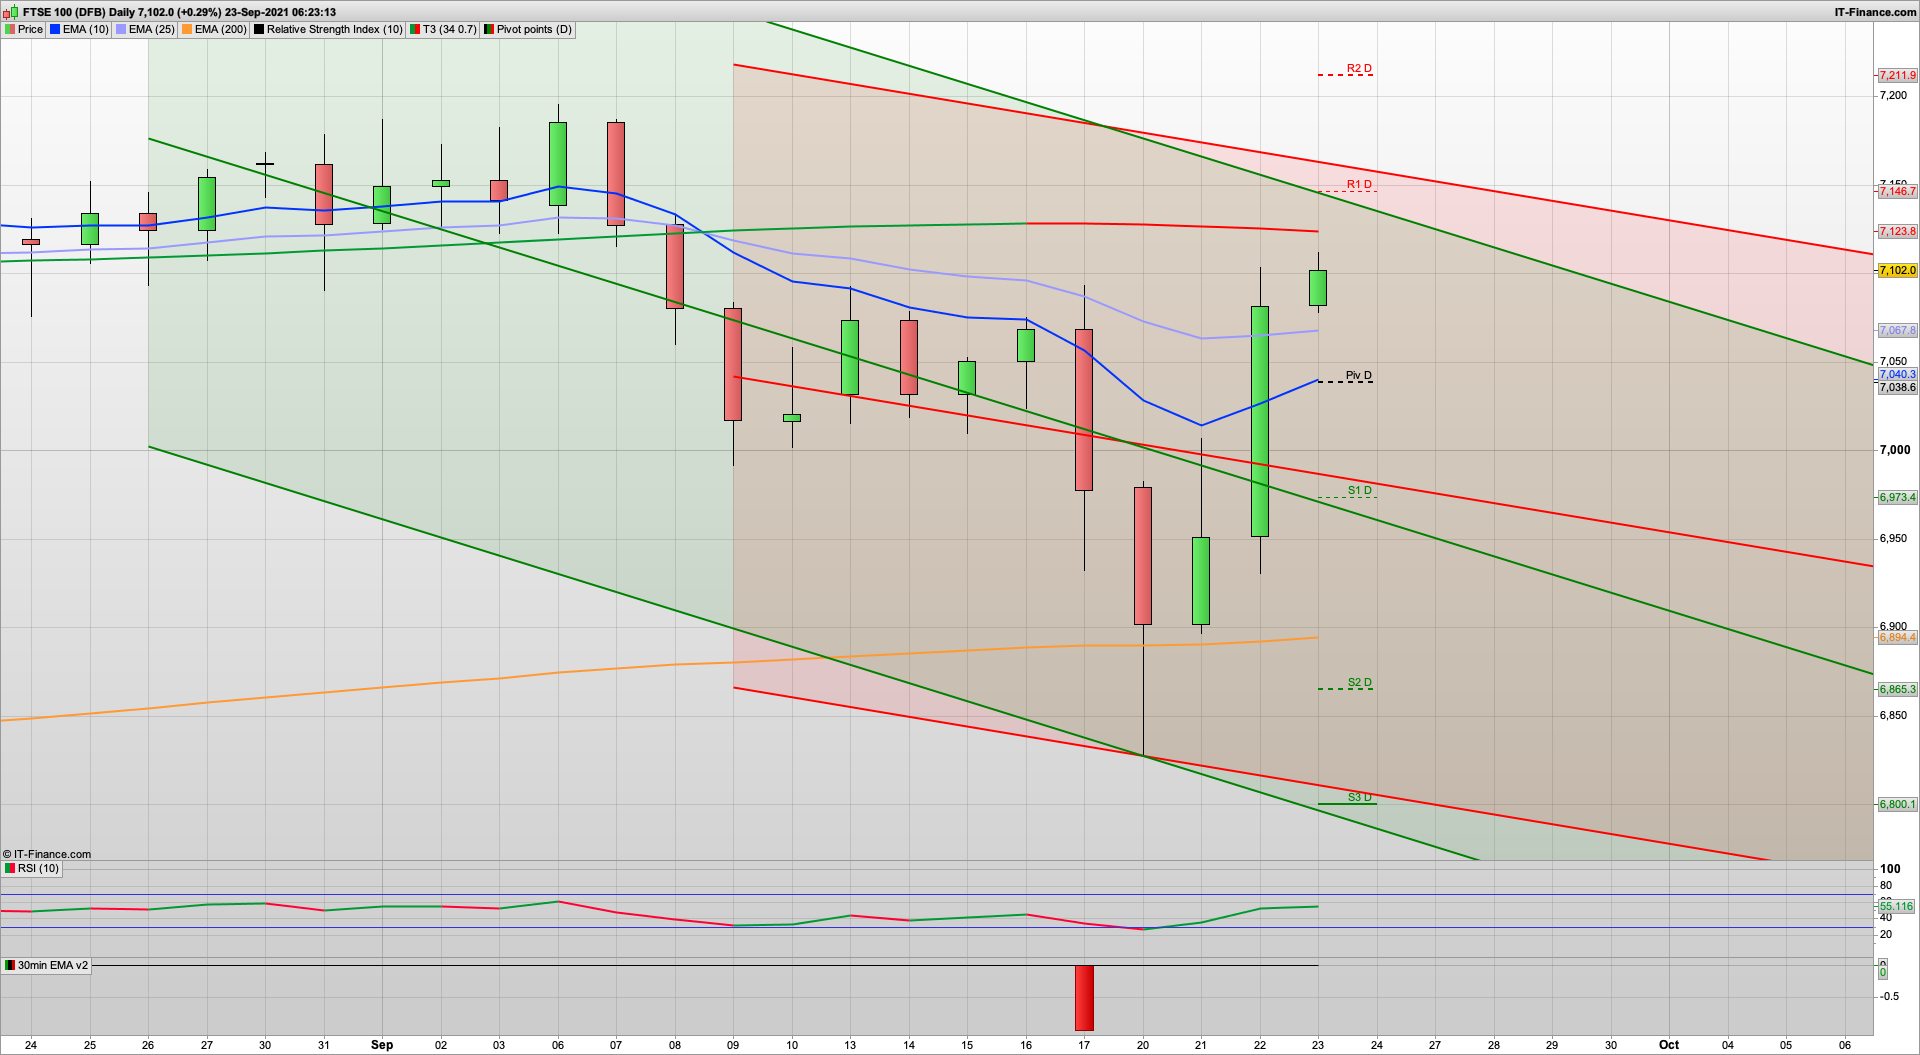 Bulls get and hold above 7100 | 7100 7037 7000 support | 7146 7211 resistance